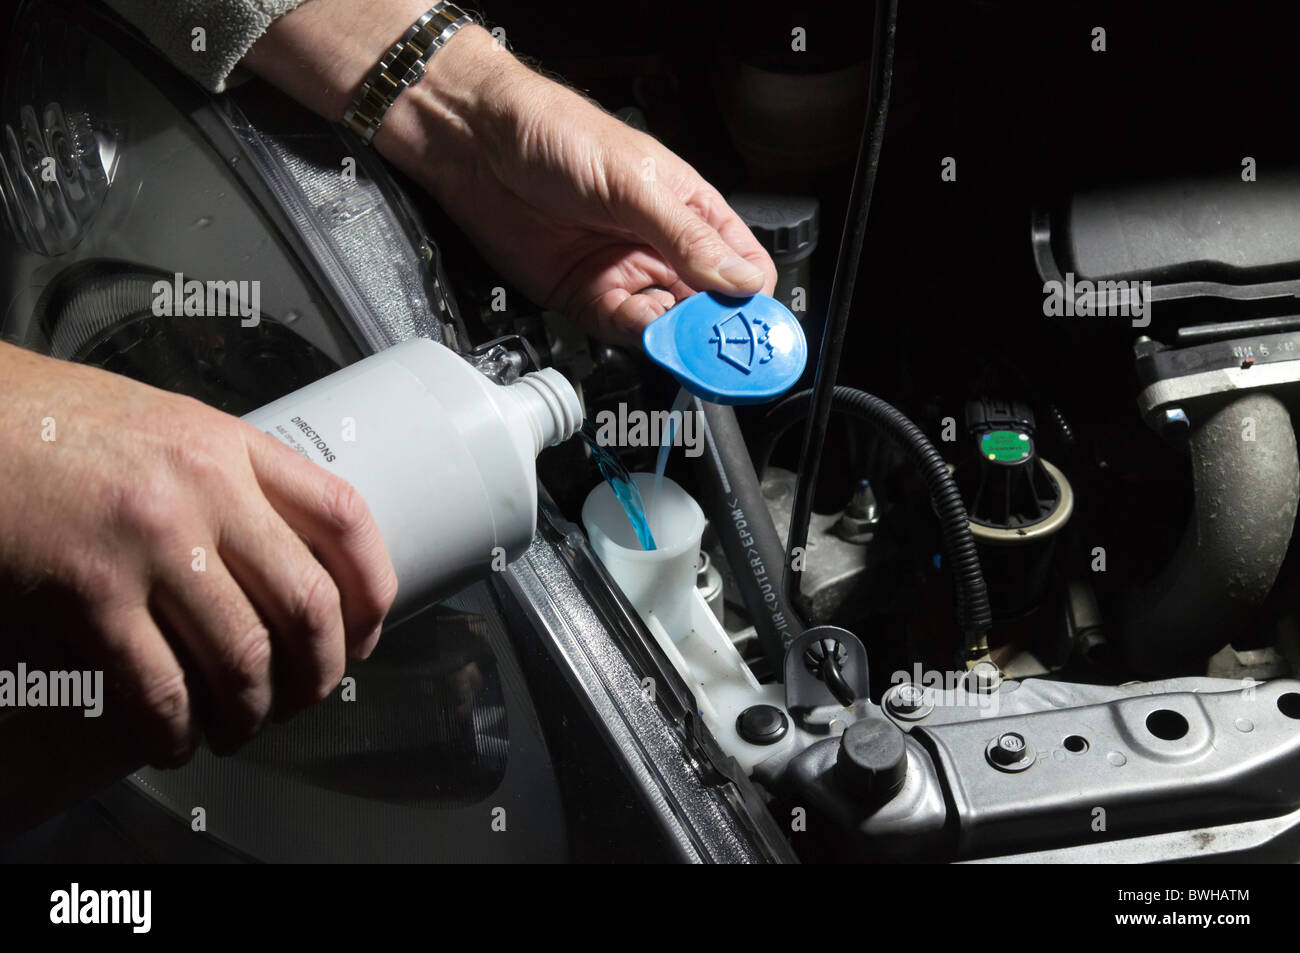 Washer Fluid Stock Photos Washer Fluid Stock Images Alamy